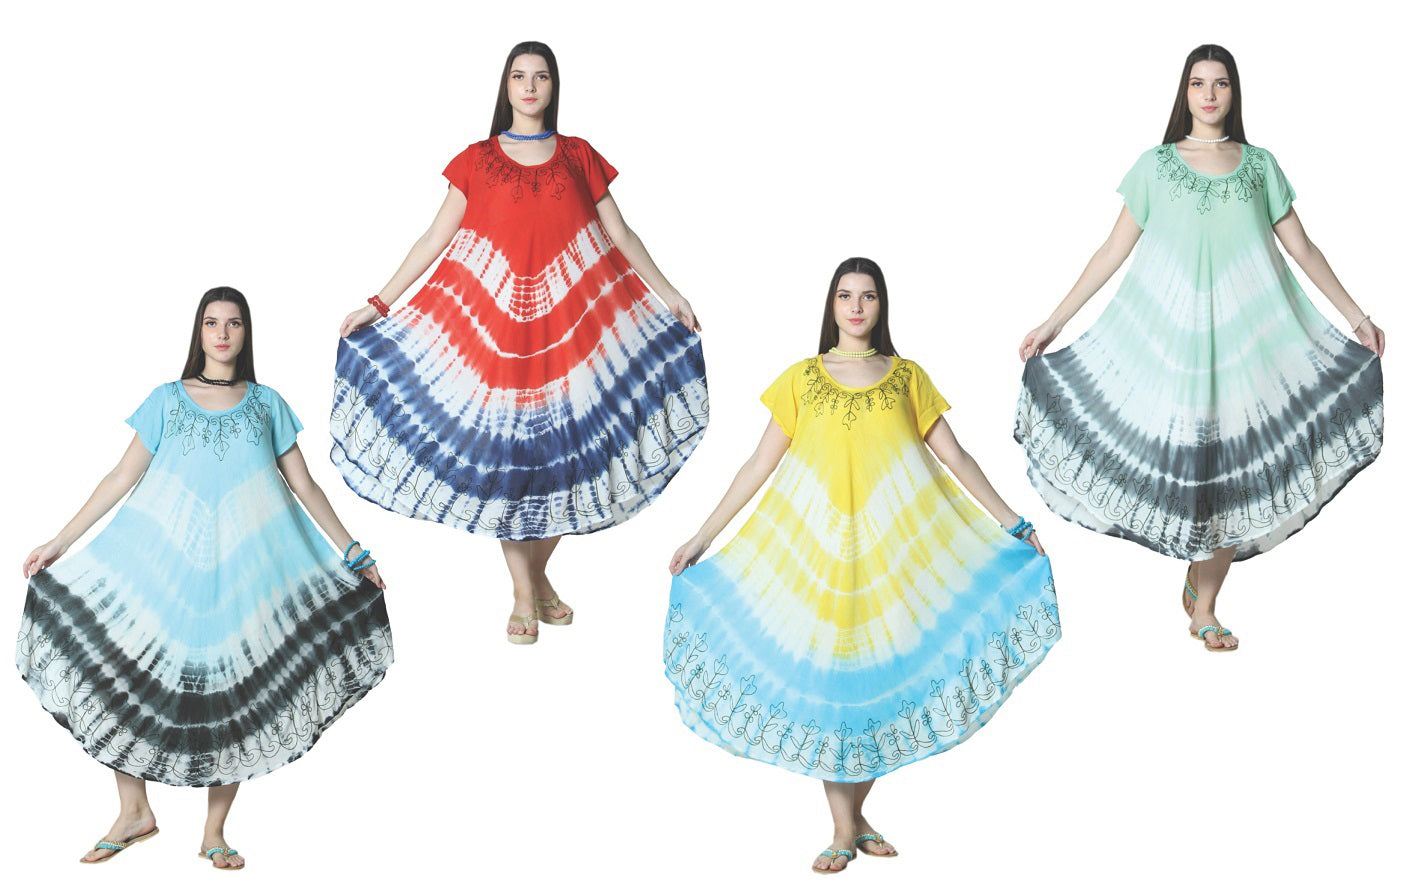 Wholesale Clothing Dresses Rayon Crape Cap Sleeve Dress-Tie Dye Brush Paint 12/48/Case O/S (3 Colors) NWG32